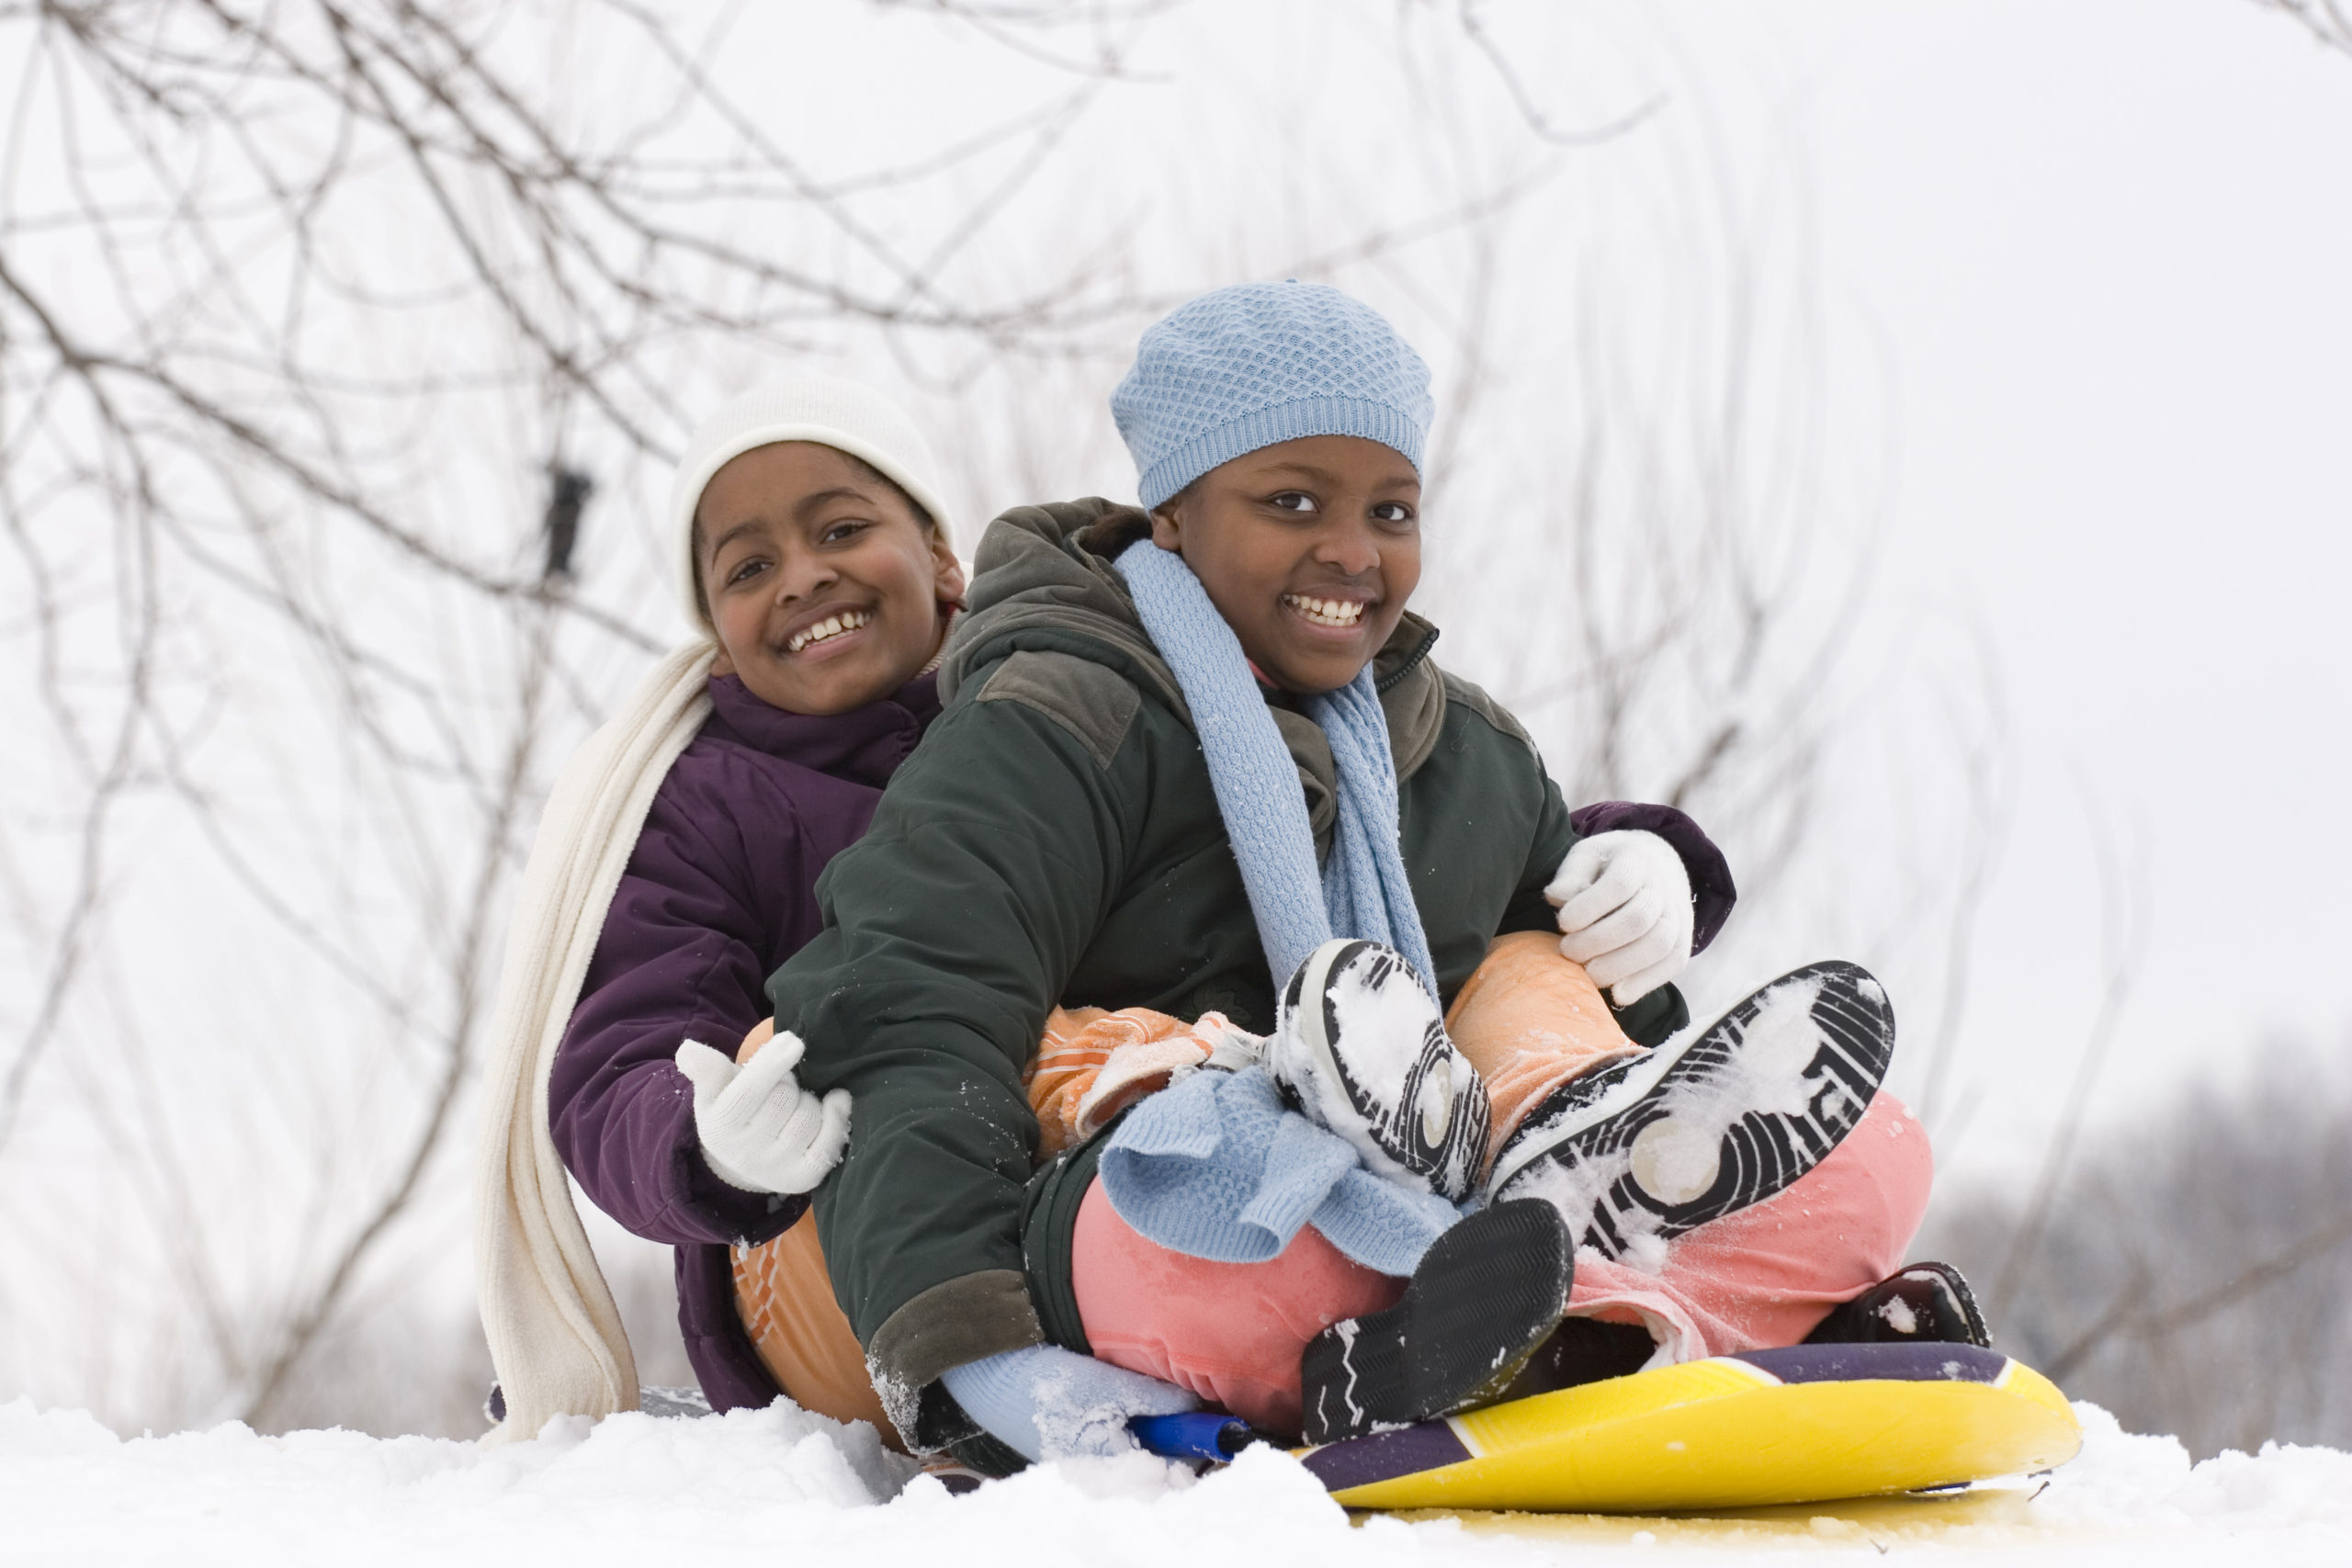 Two children smiling on a sled in the snow